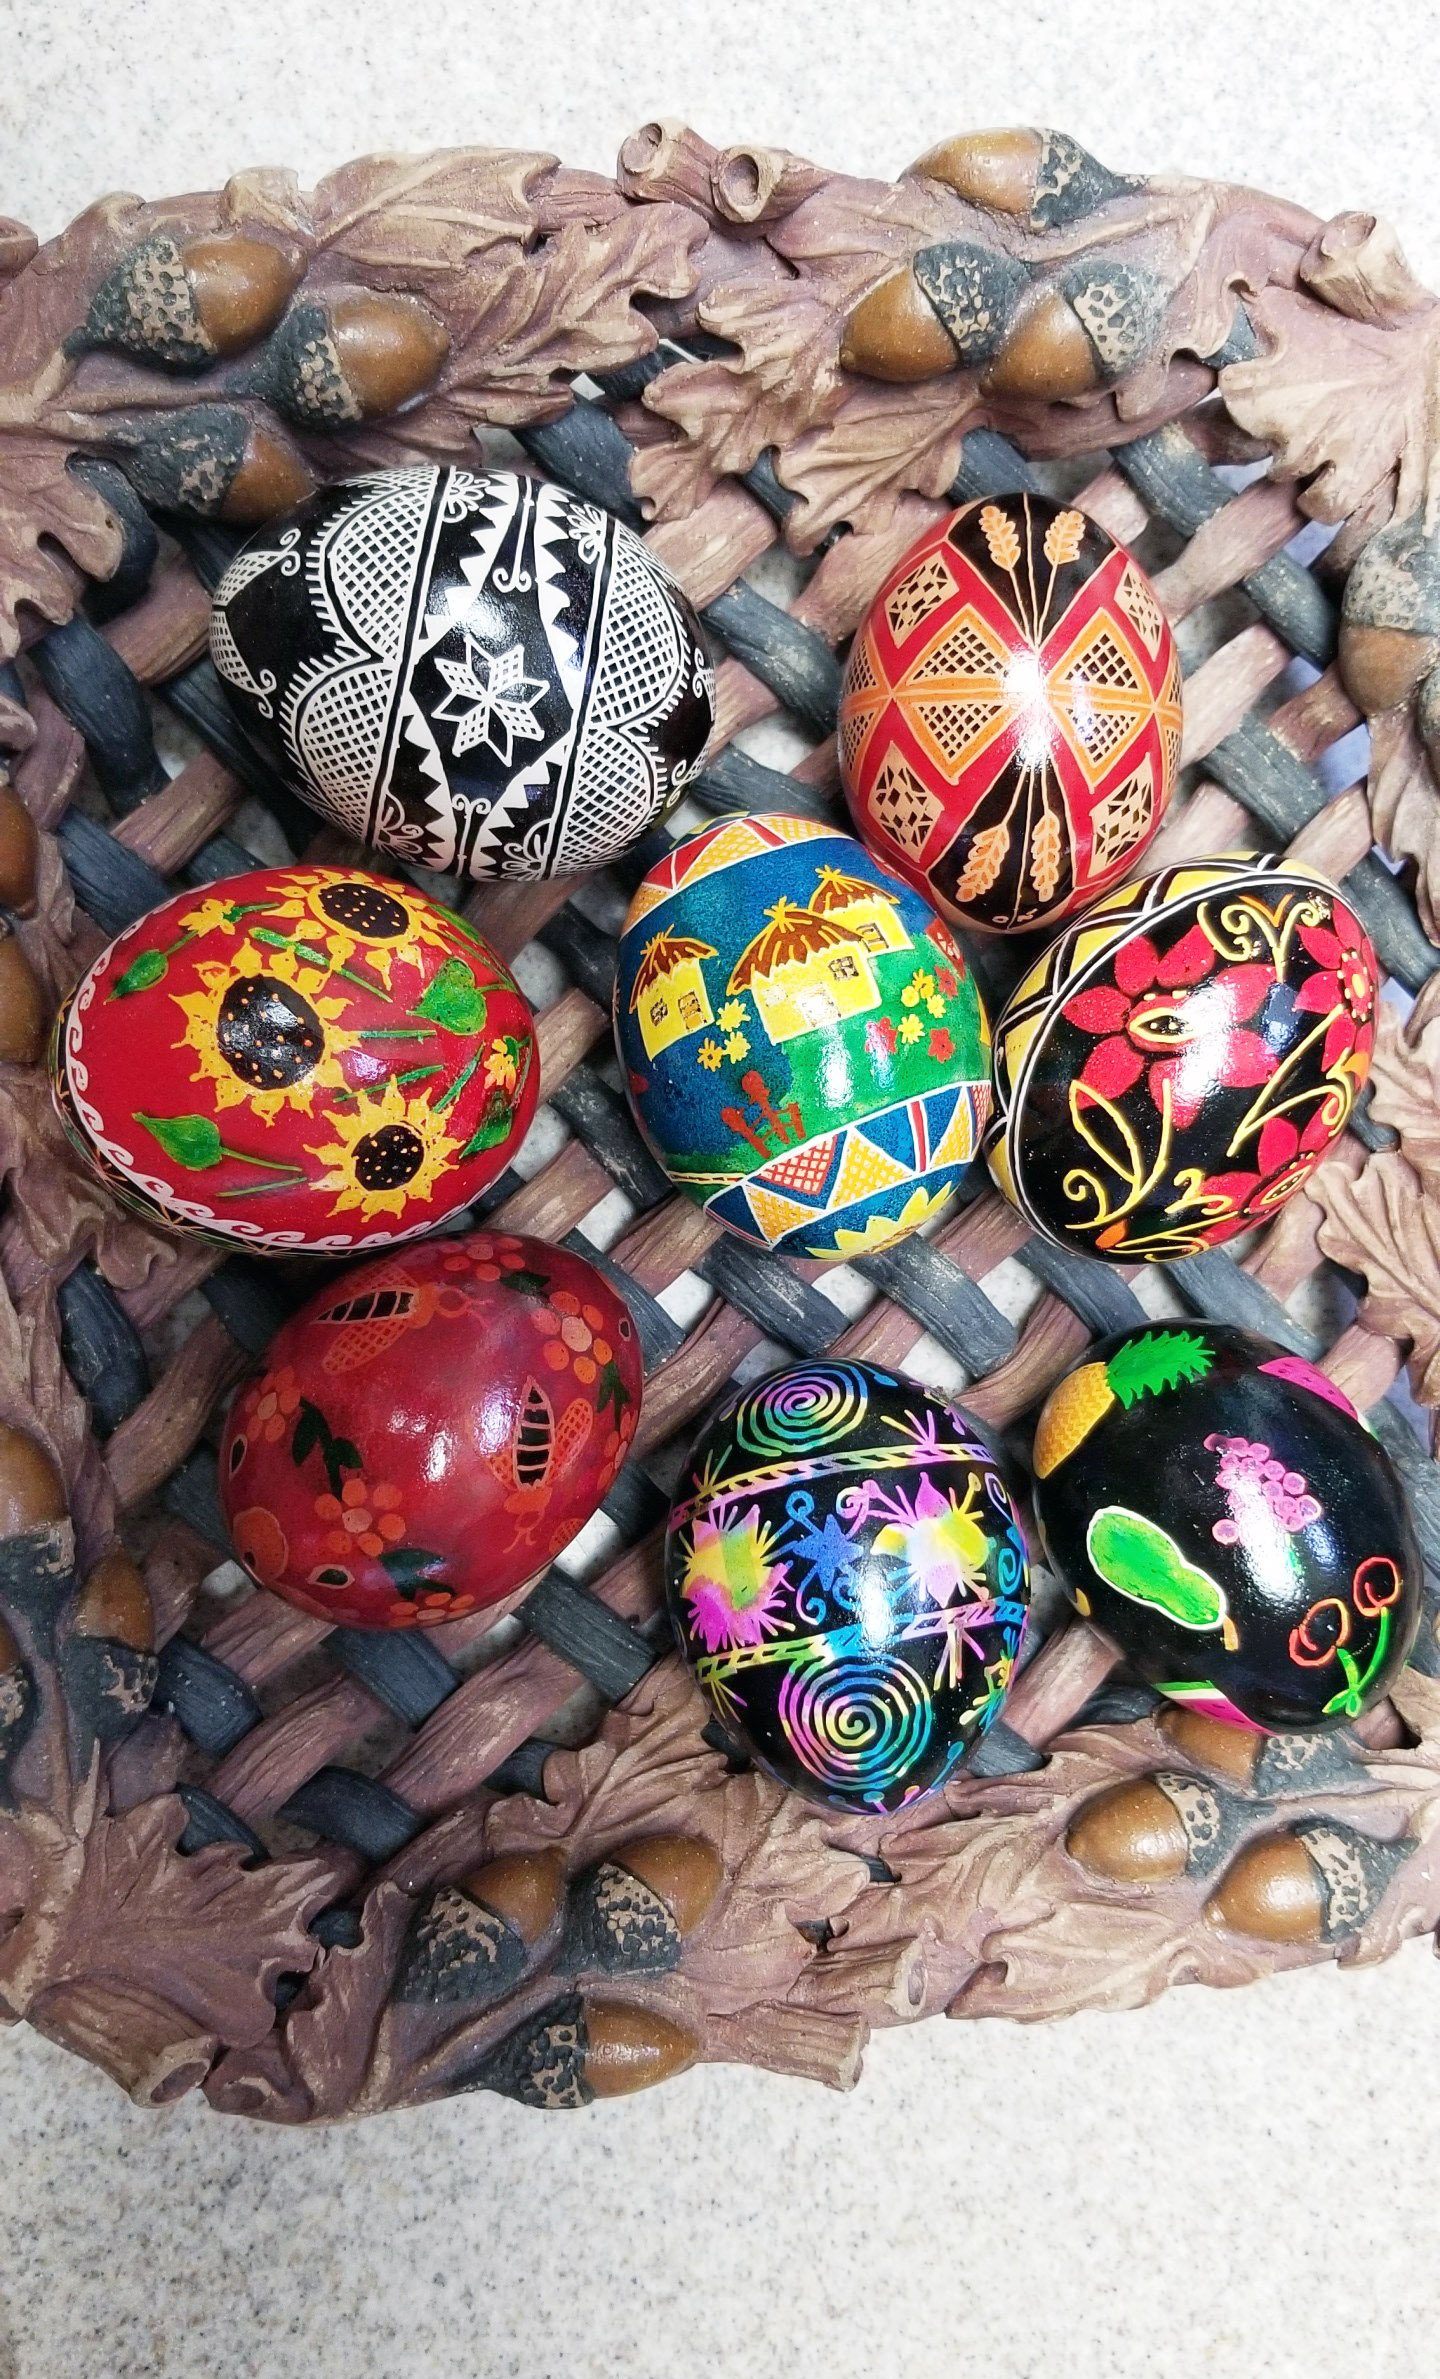 Oksana's favorite activity has been making these traditional Ukrainian Easter eggs with her mother and sister.